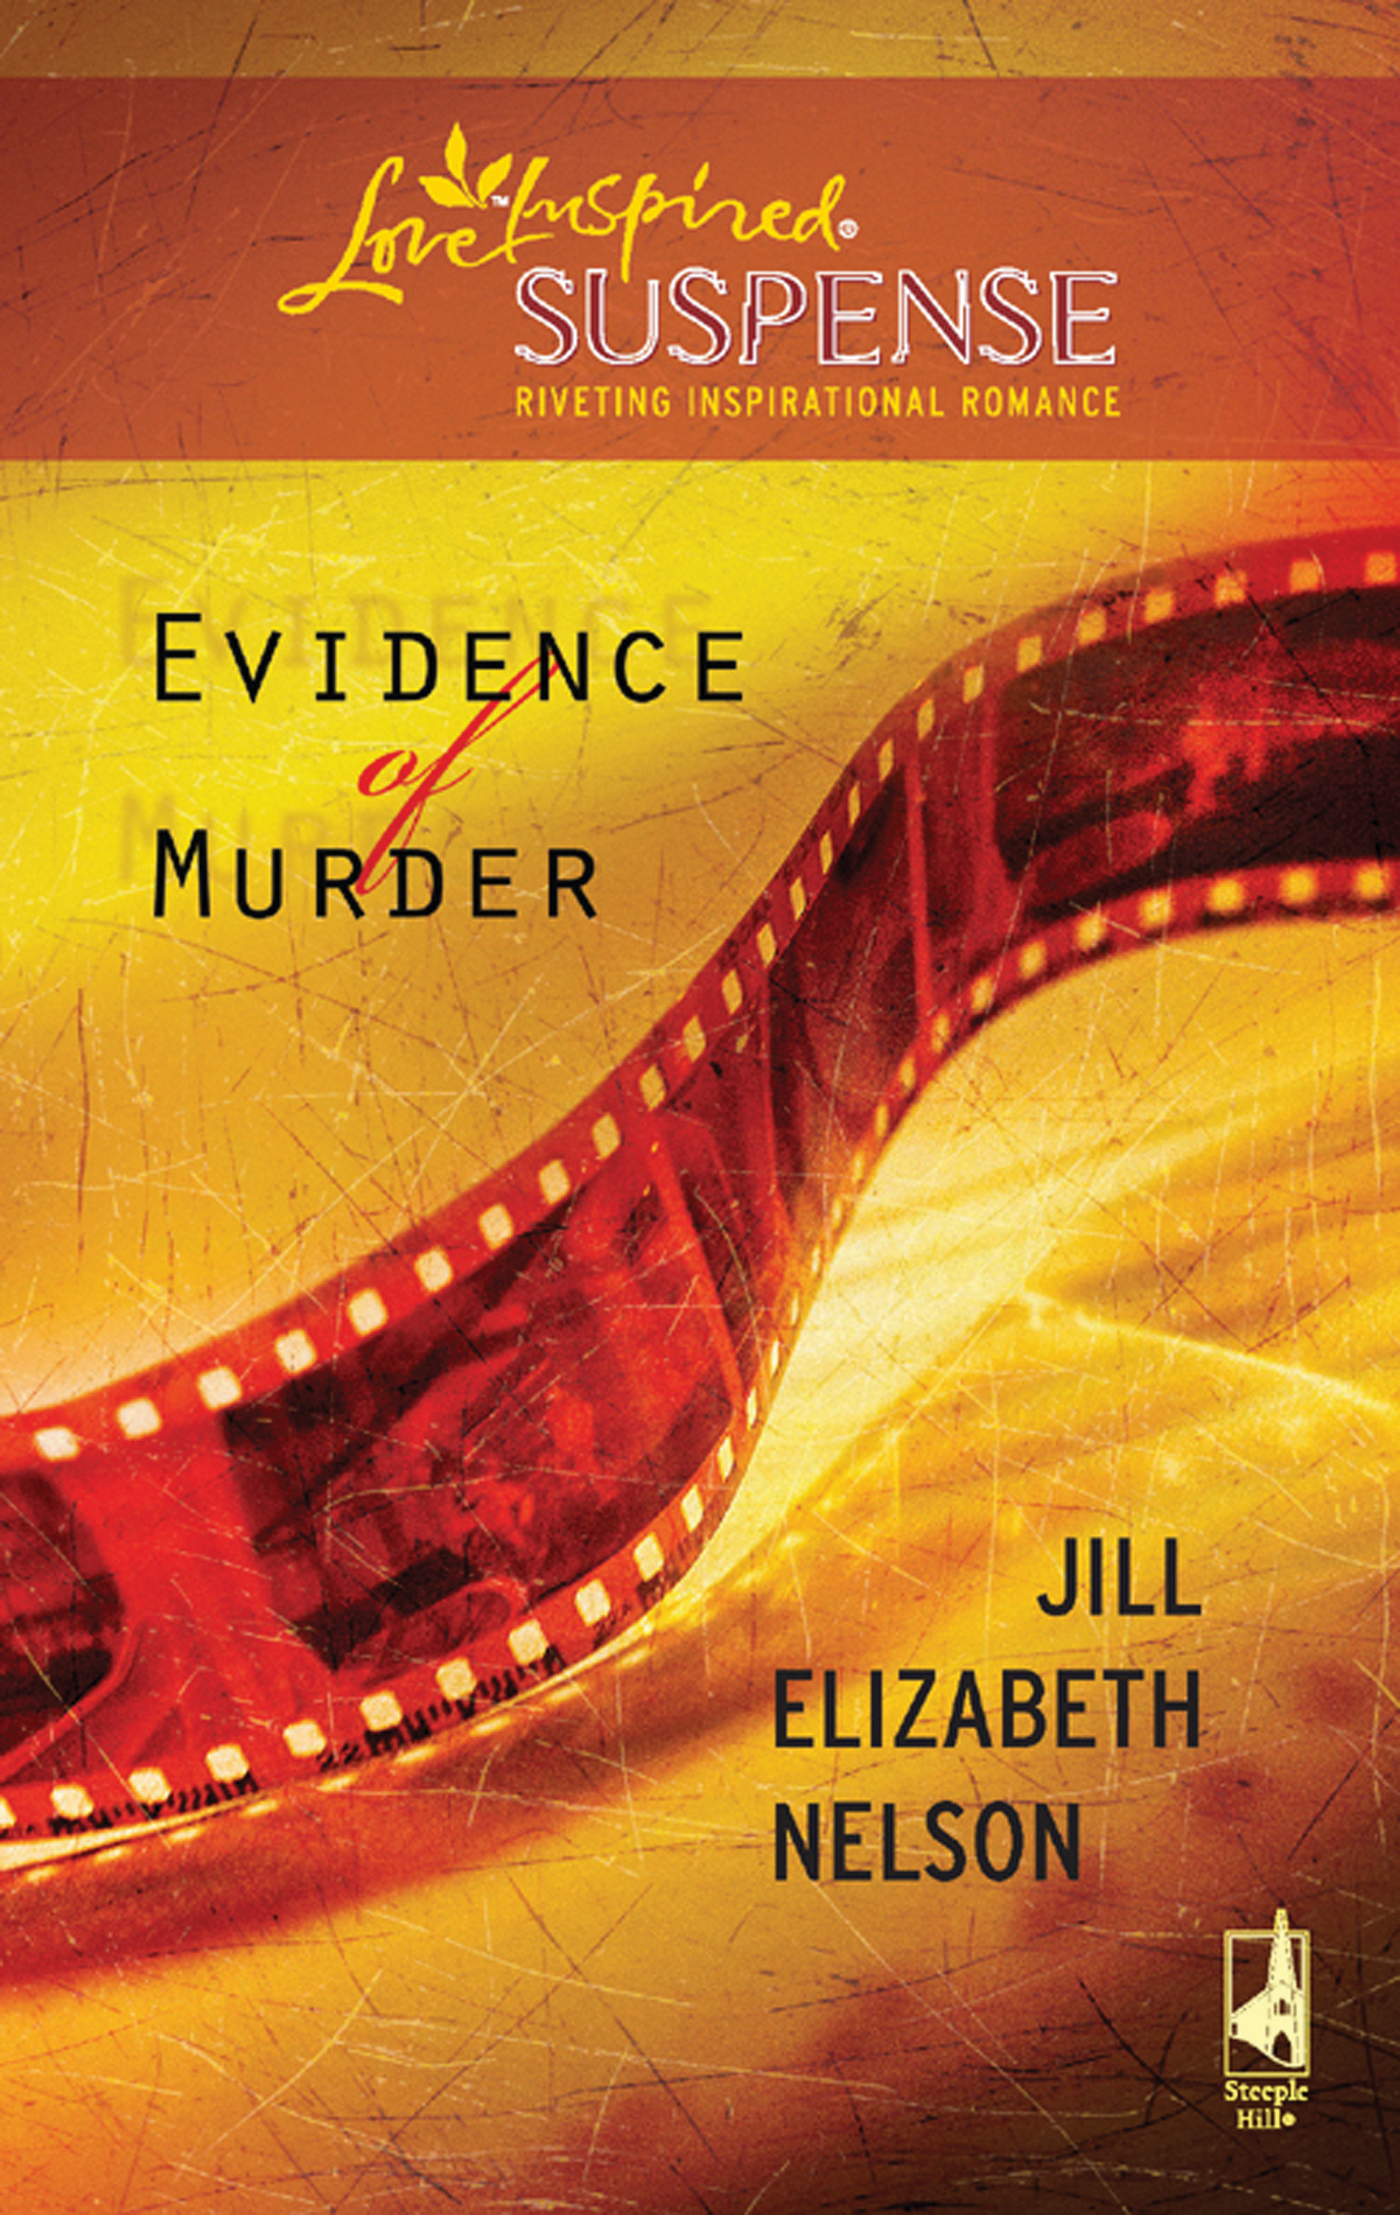 Evidence of Murder (Mills & Boon Love Inspired Suspense)